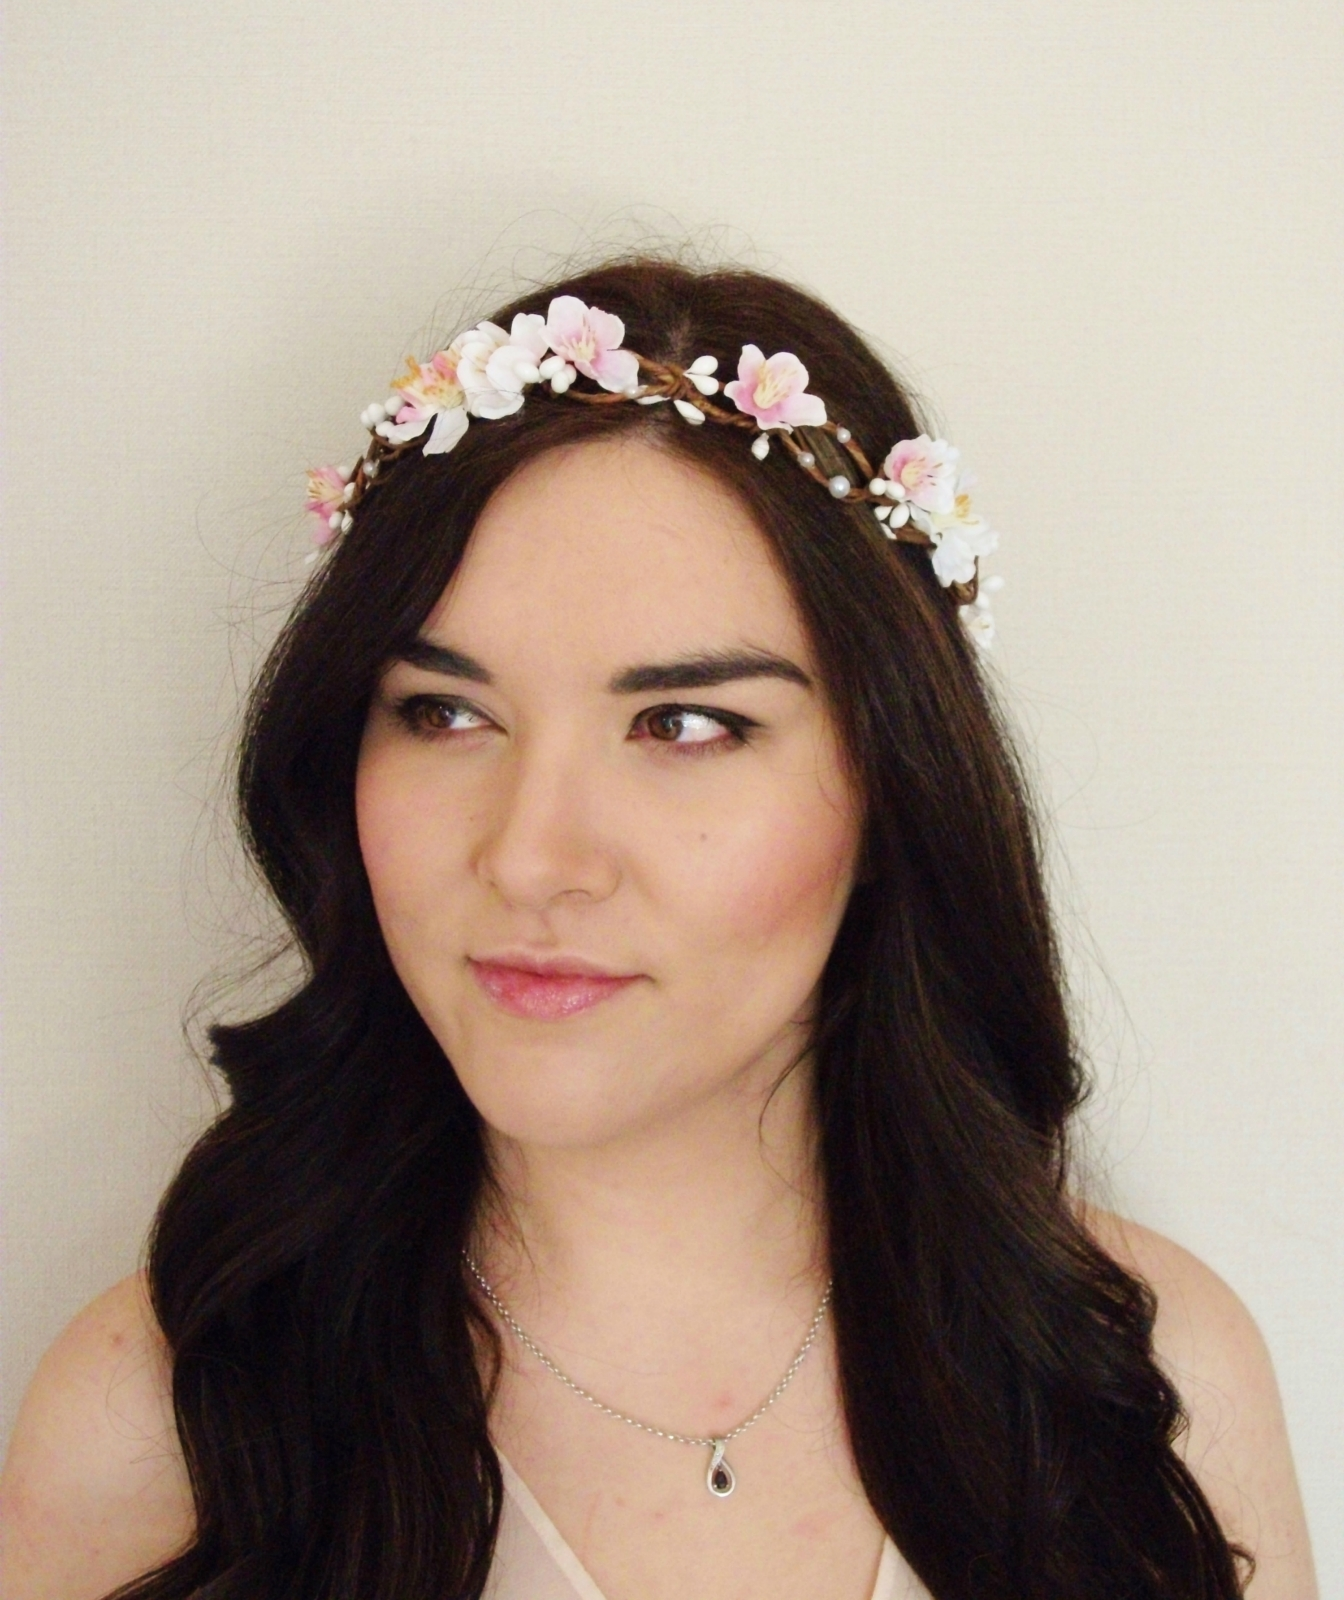 White Pink Blossom Woodland Pip Berry Vine Flower Crown Floral